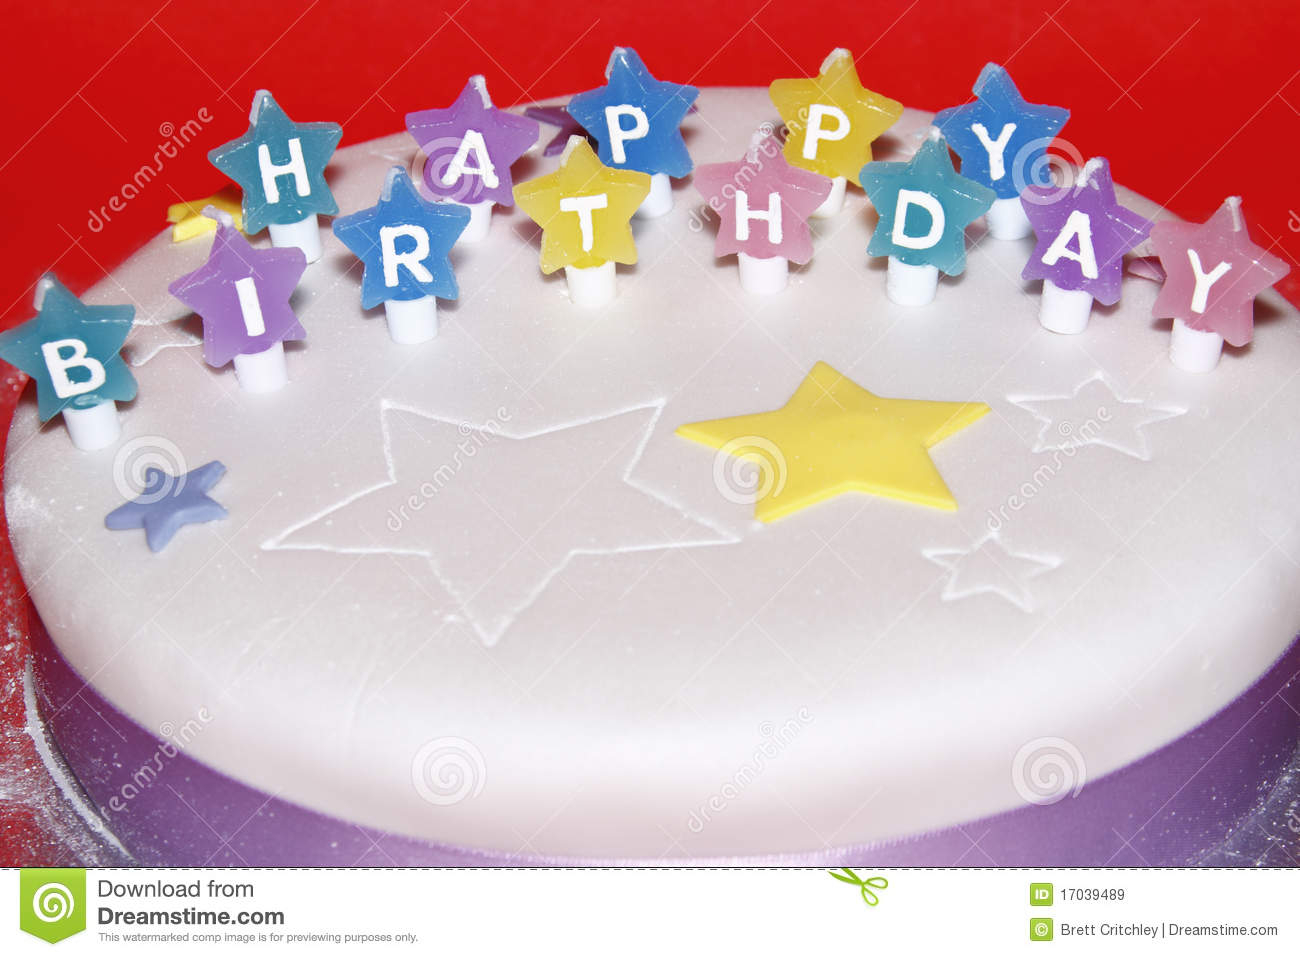 Birthday Cake Picture Free Download Happy Birthday Cake Stock Image Image Of Colour Wish 17039489